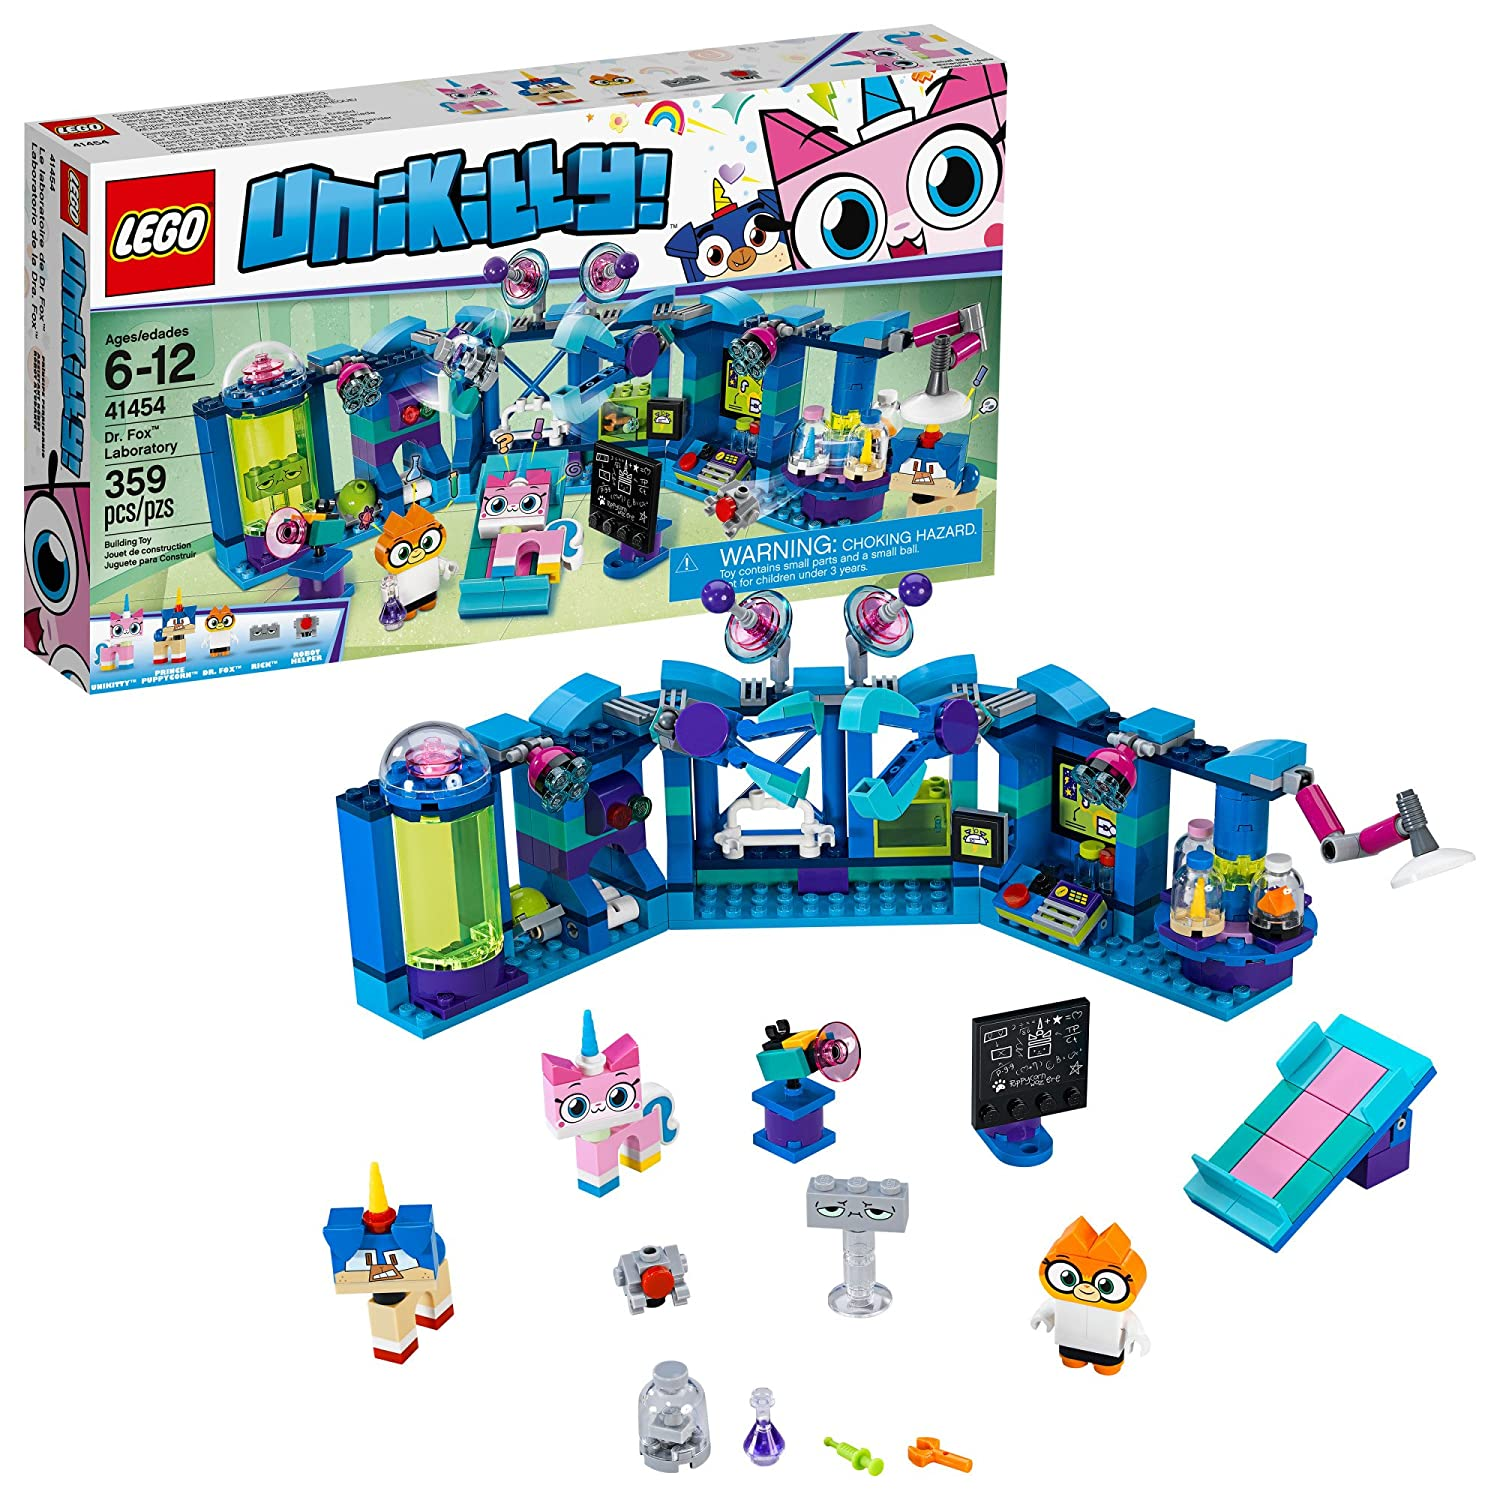 LEGO Unikitty! Dr. Fox Laboratory 41454 Building Kit (359 Piece) 6213846